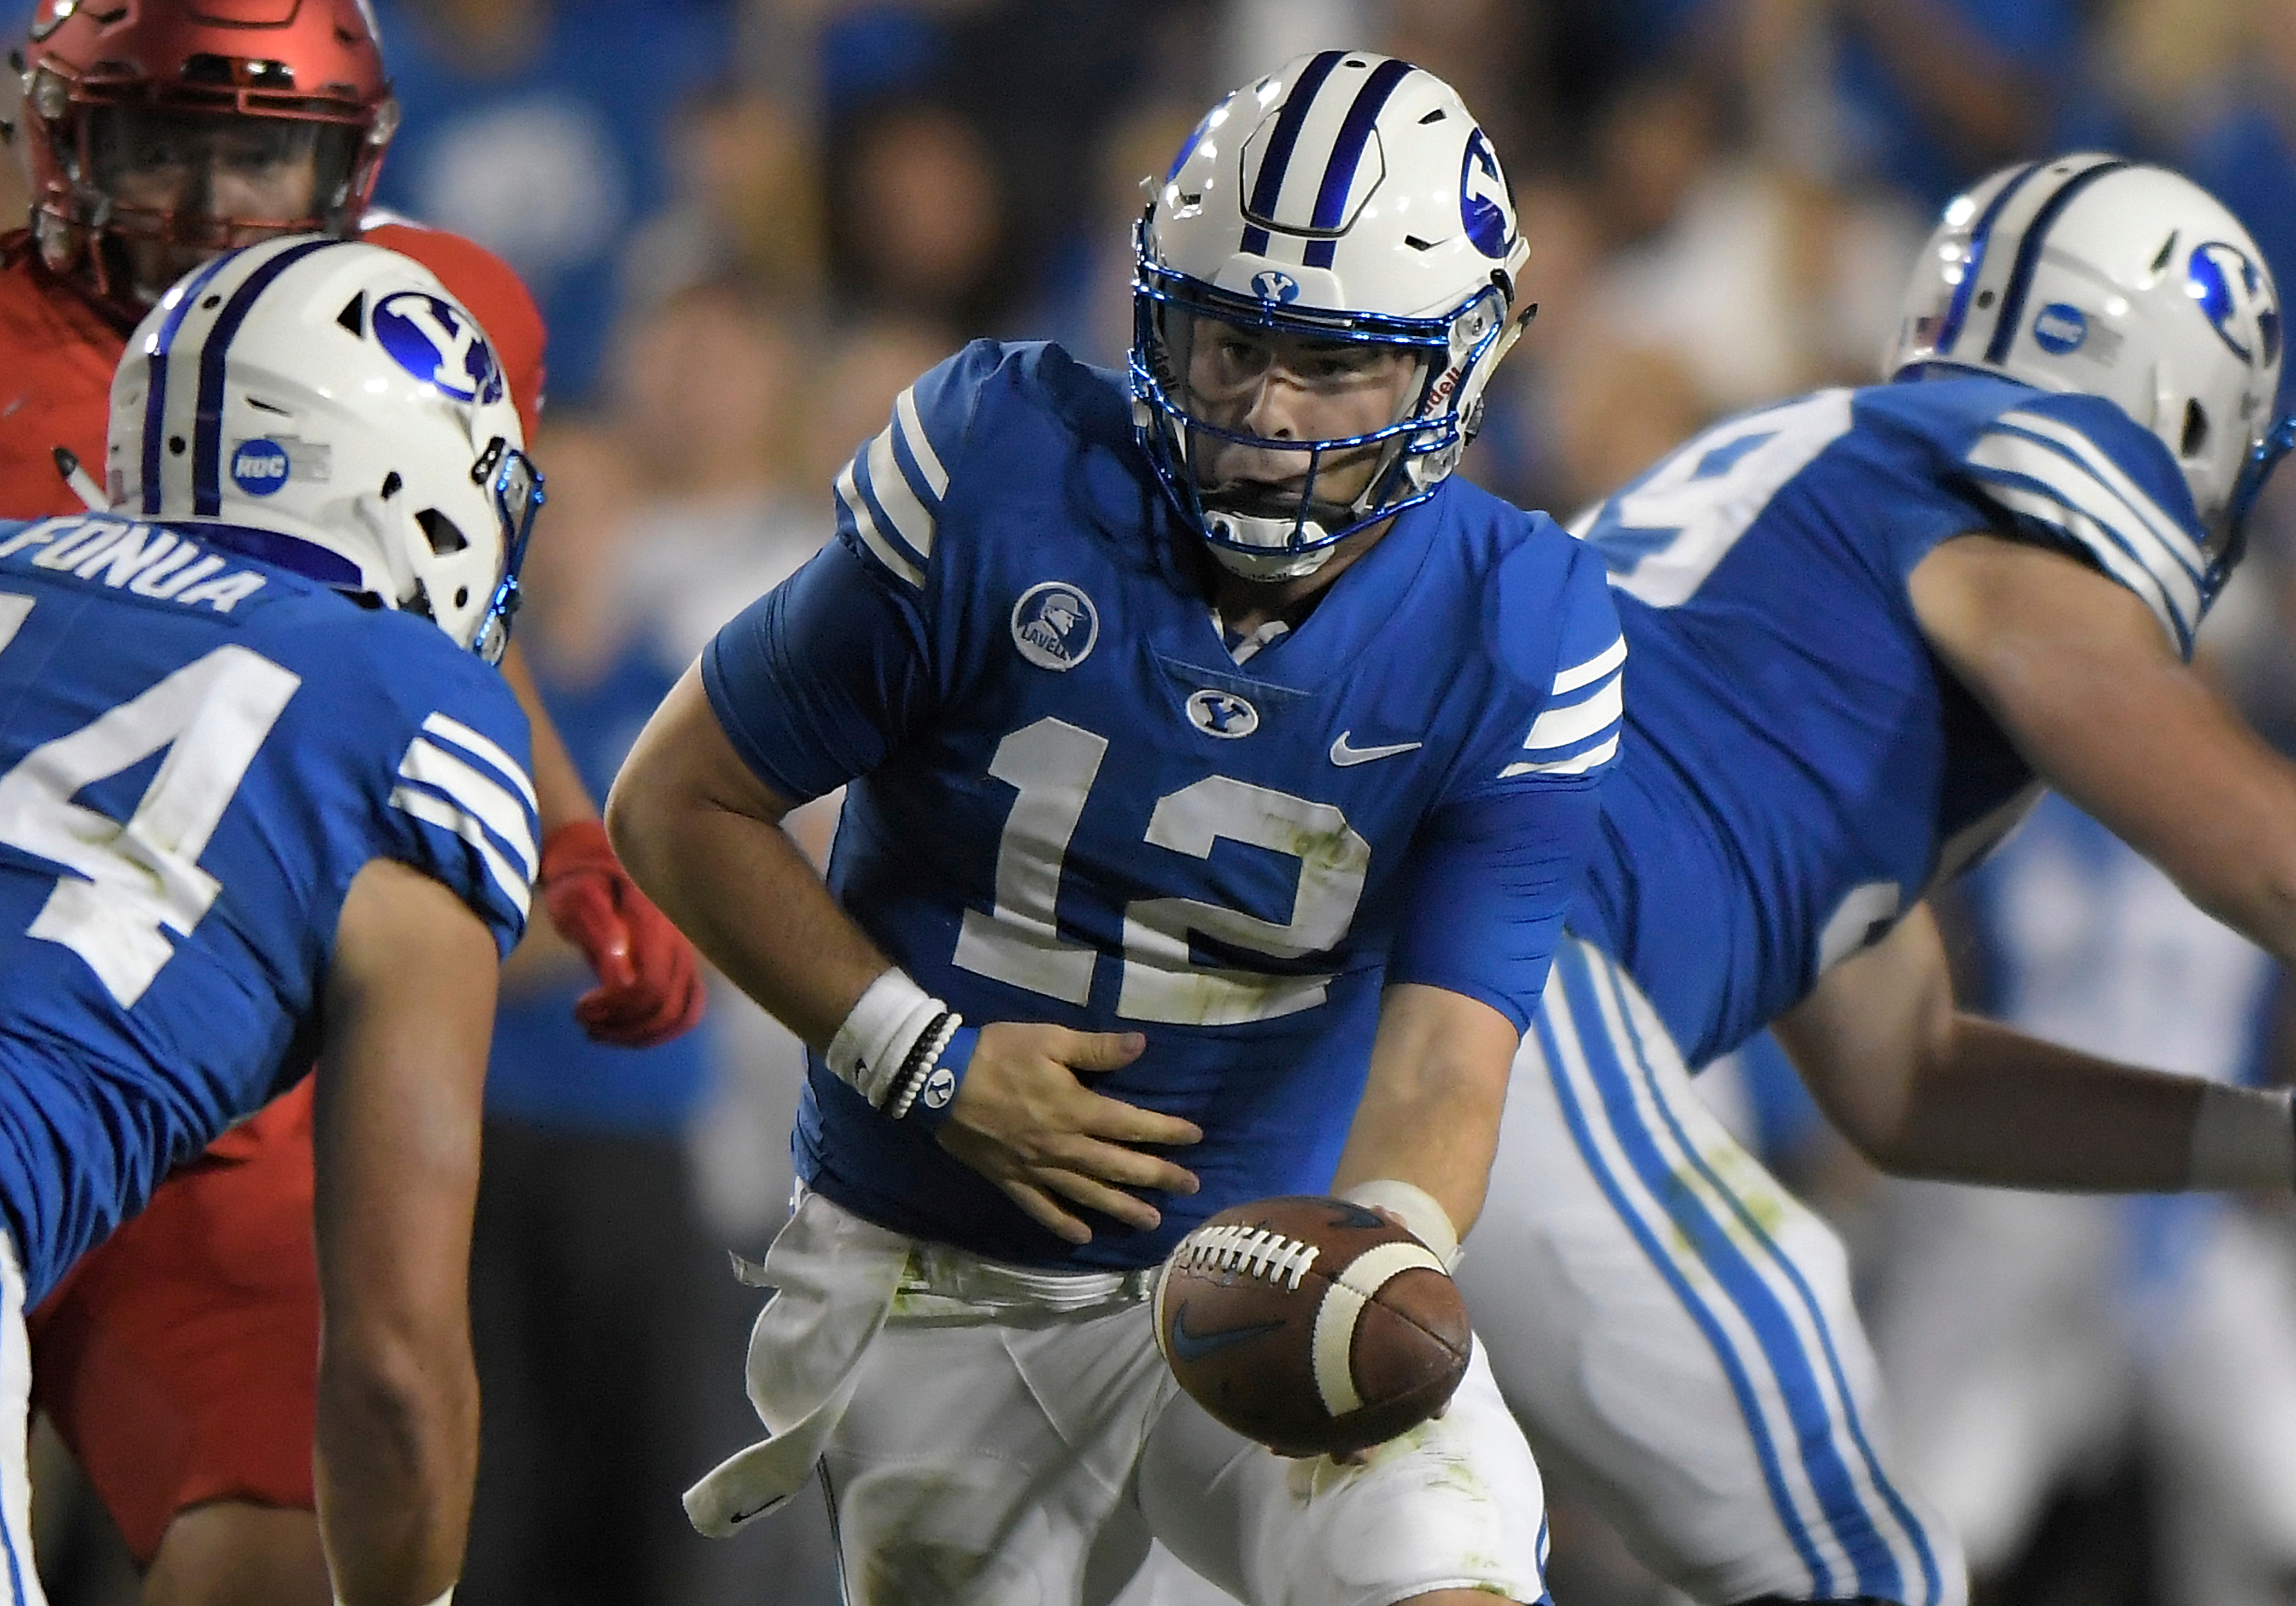 BYU football: The Cougars may be close to an offensive ...